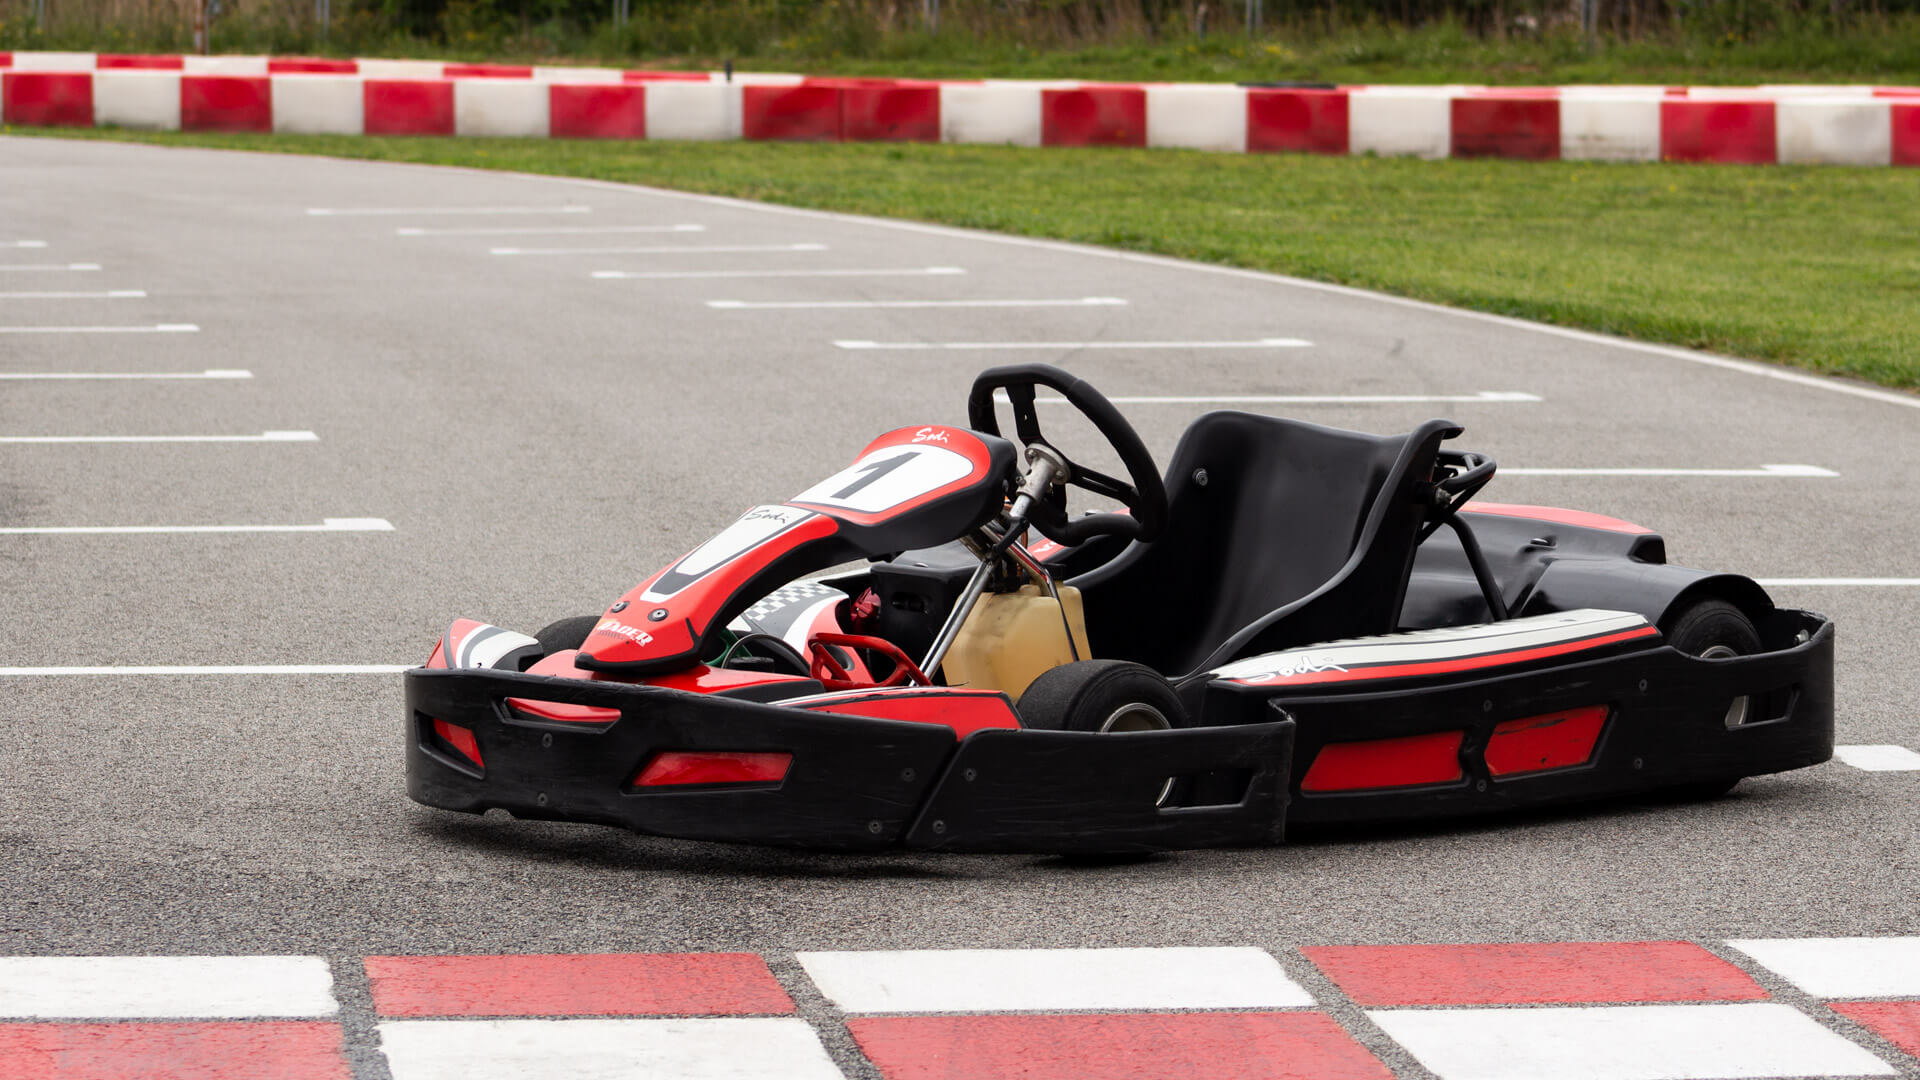 Sodikart LR4 - Junior